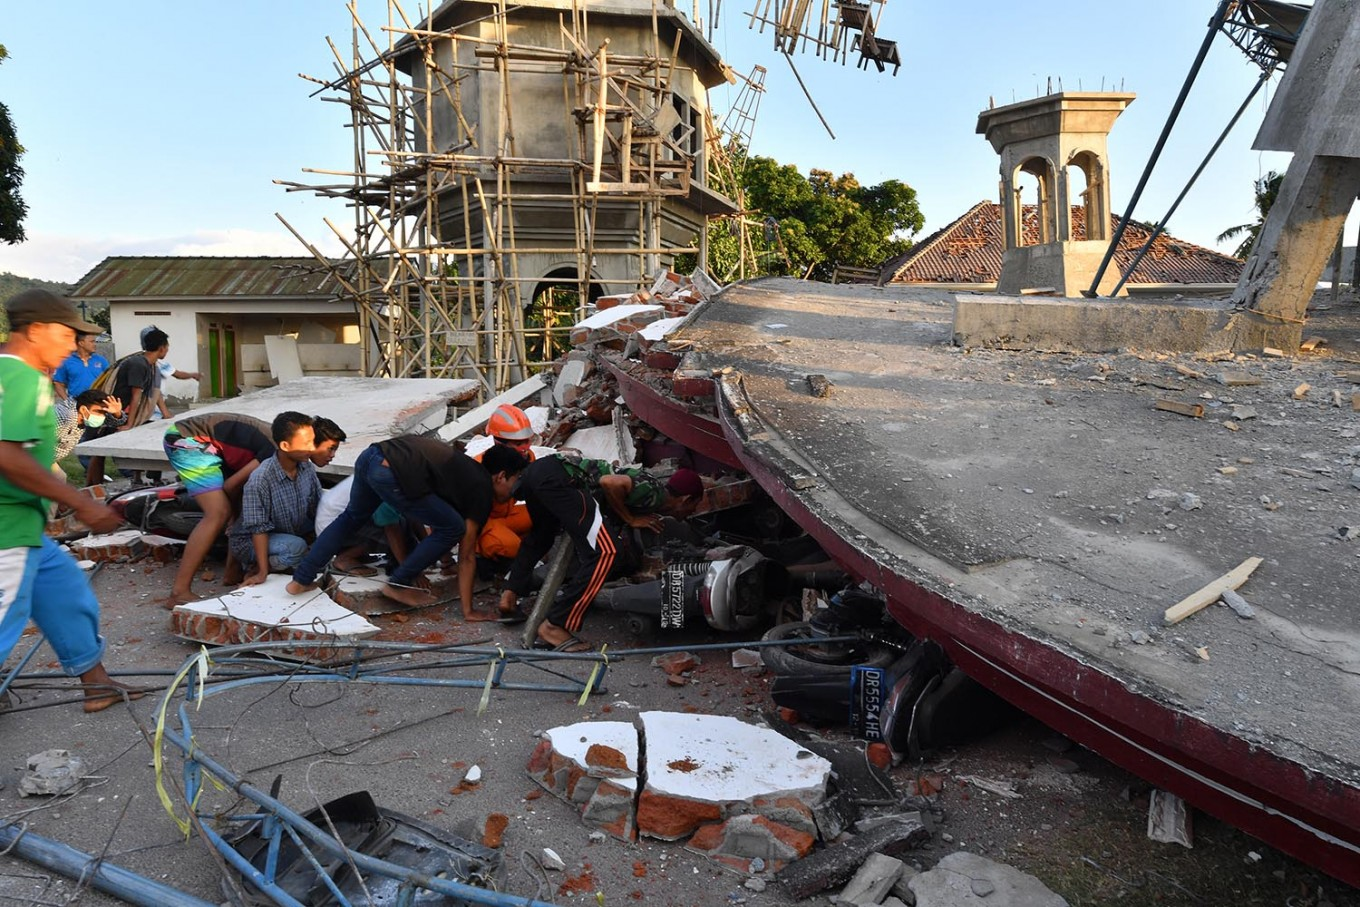 Residents and a search and rescue team member look under the ruins of a mosque in Pemenang, North Lombok, on Aug. 6, 2018, the day after a 6.9-magnitude earthquake struck the area. AFP/Adek Berry